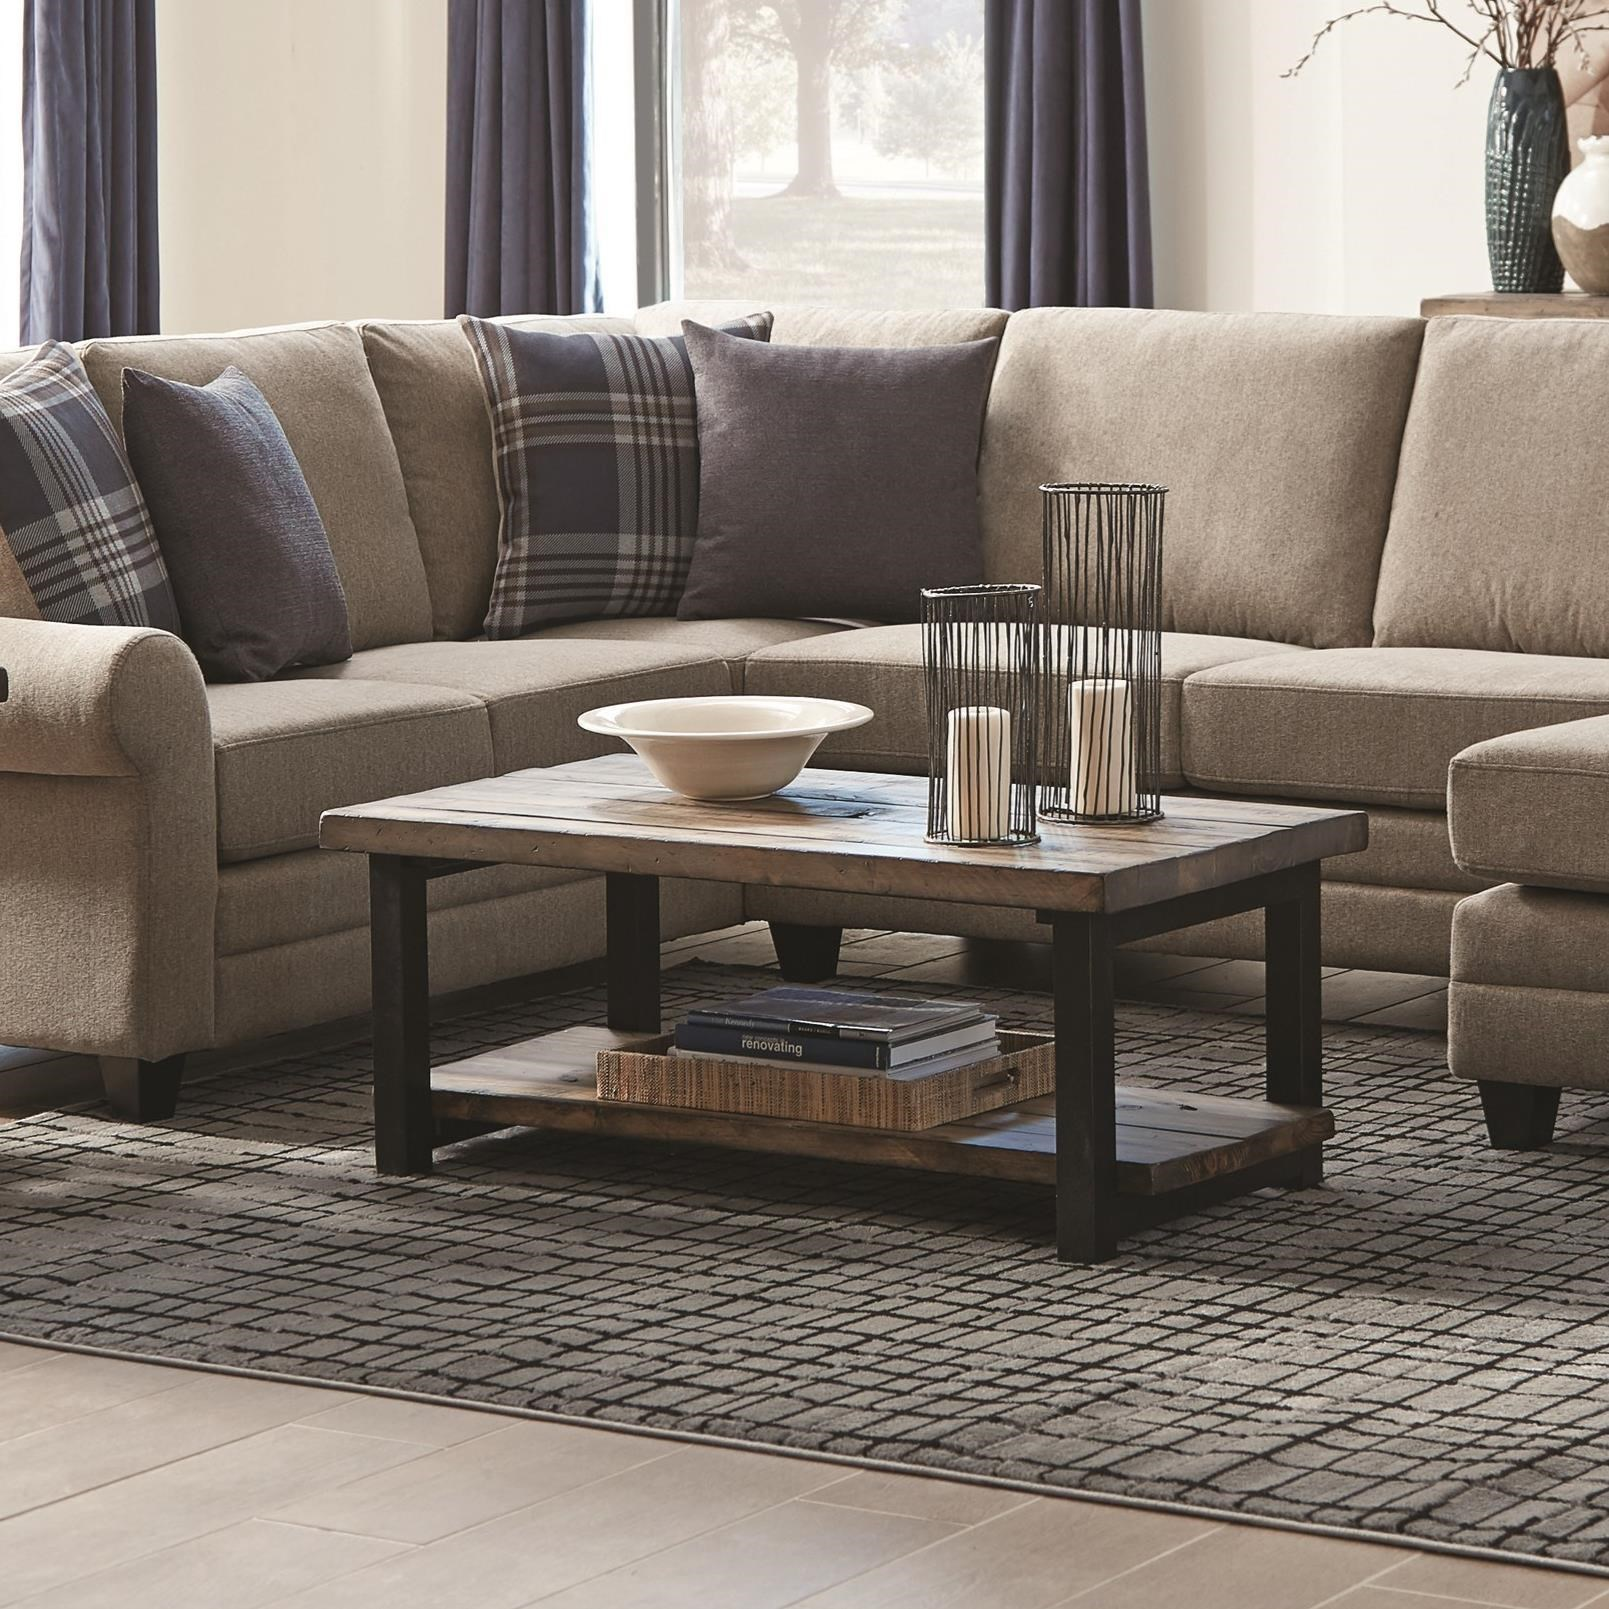 Scott Living 70567 Coffee Table - Item Number: 705678